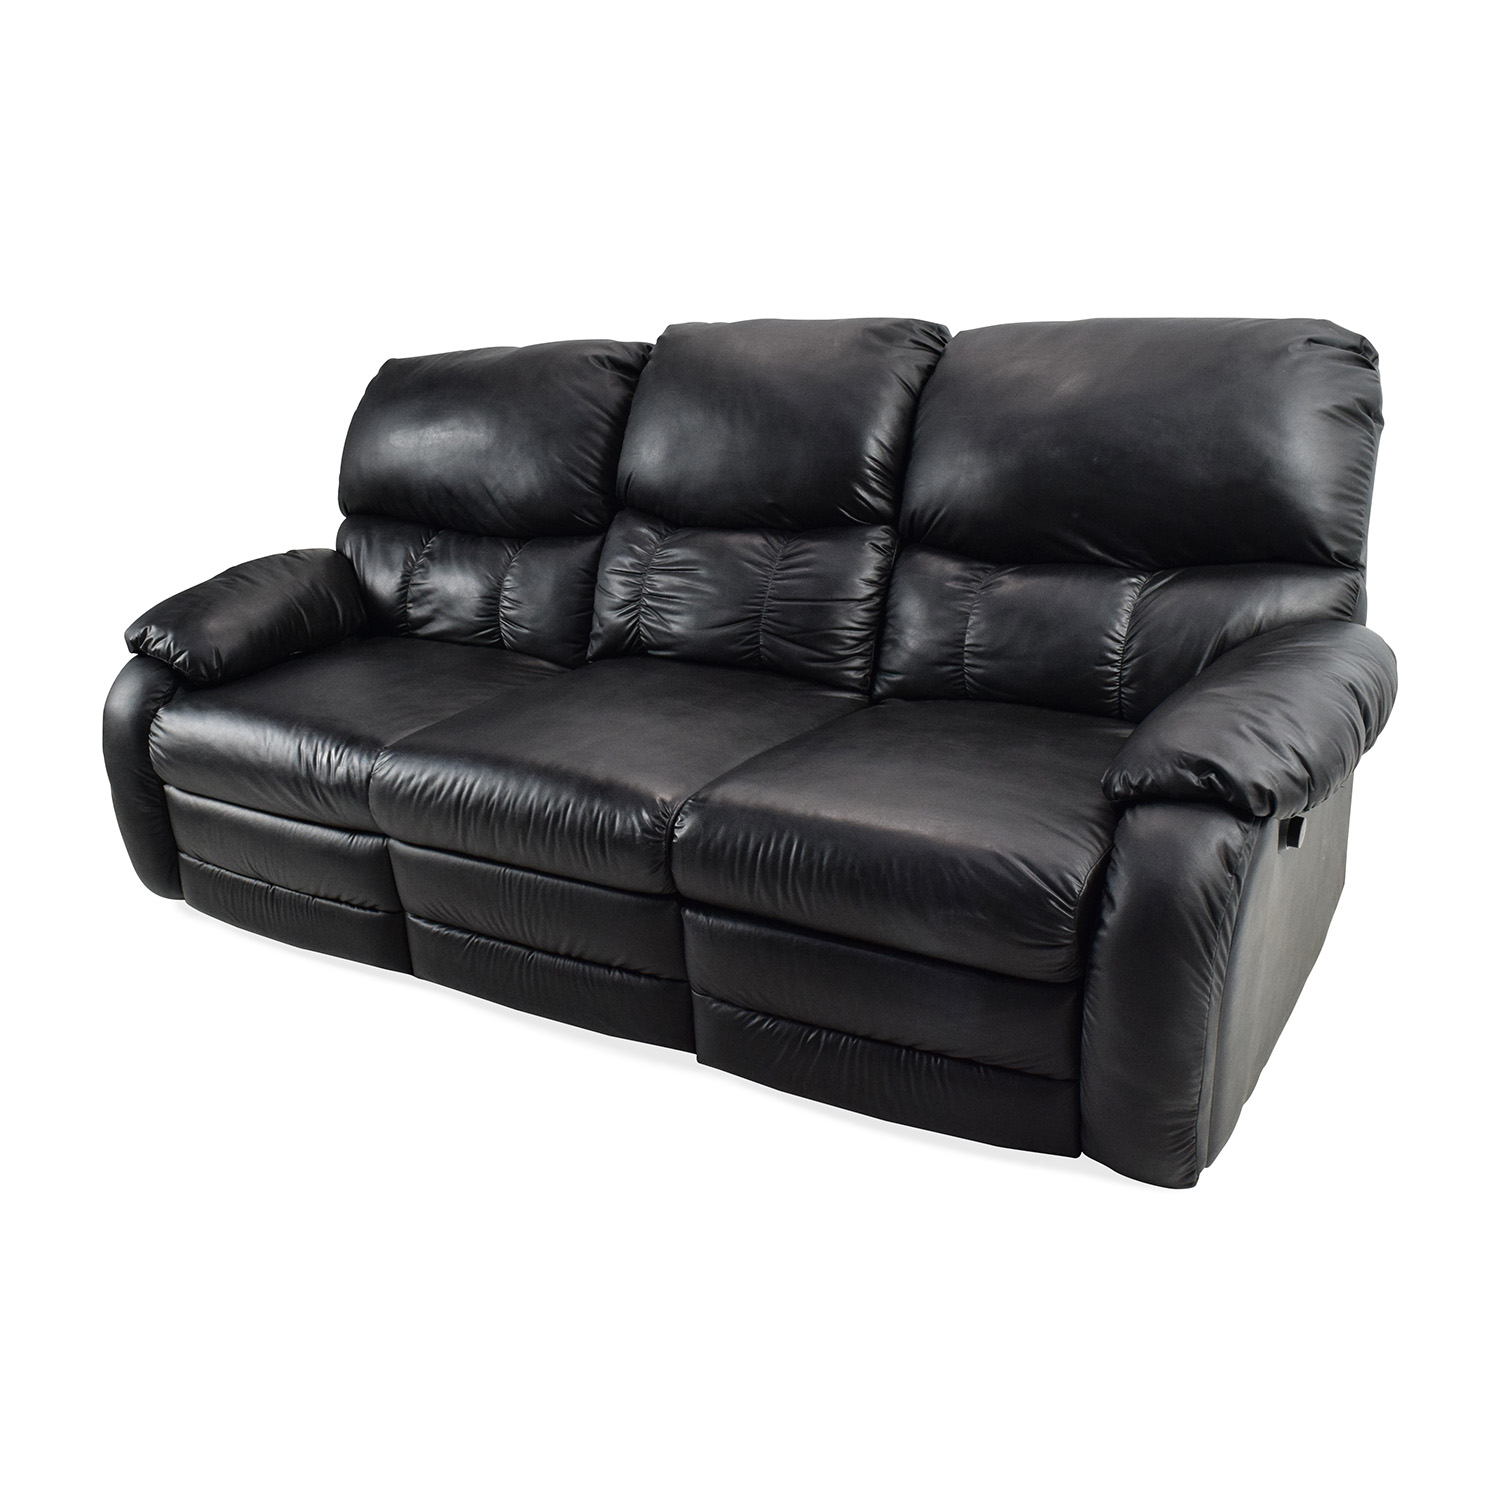 68 OFF  Black Leather Reclining Couch  Sofas